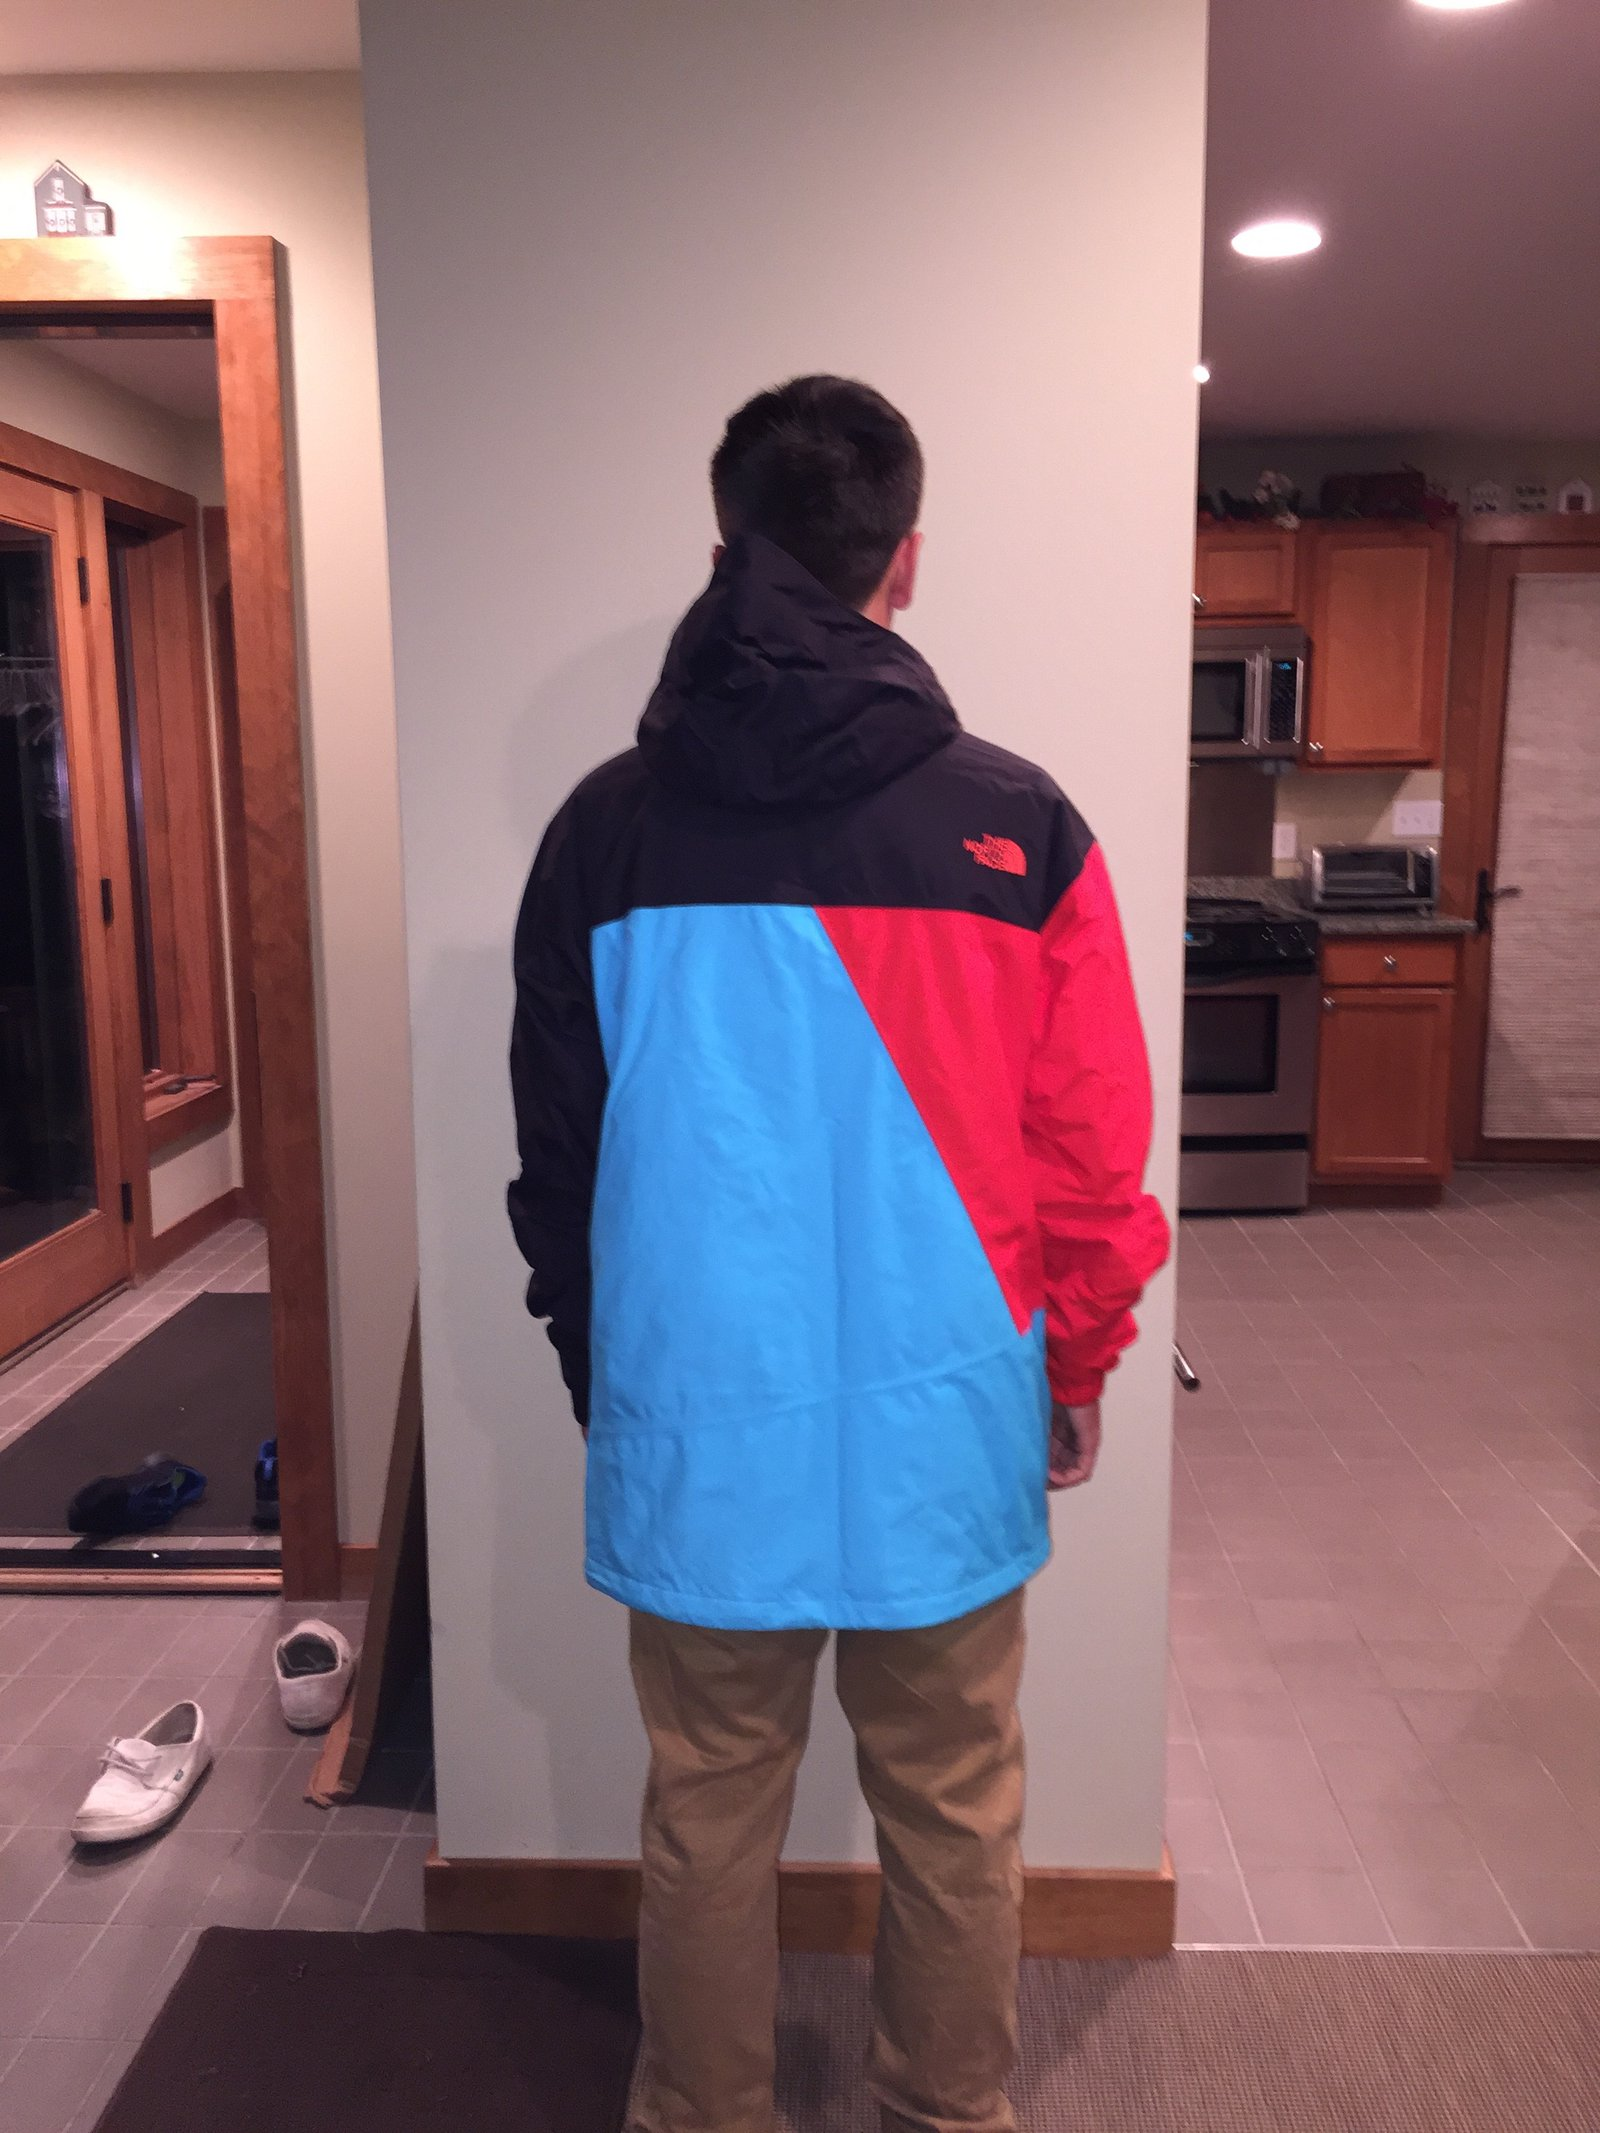 The North Face Gonzo Tom Wallisch Jacket